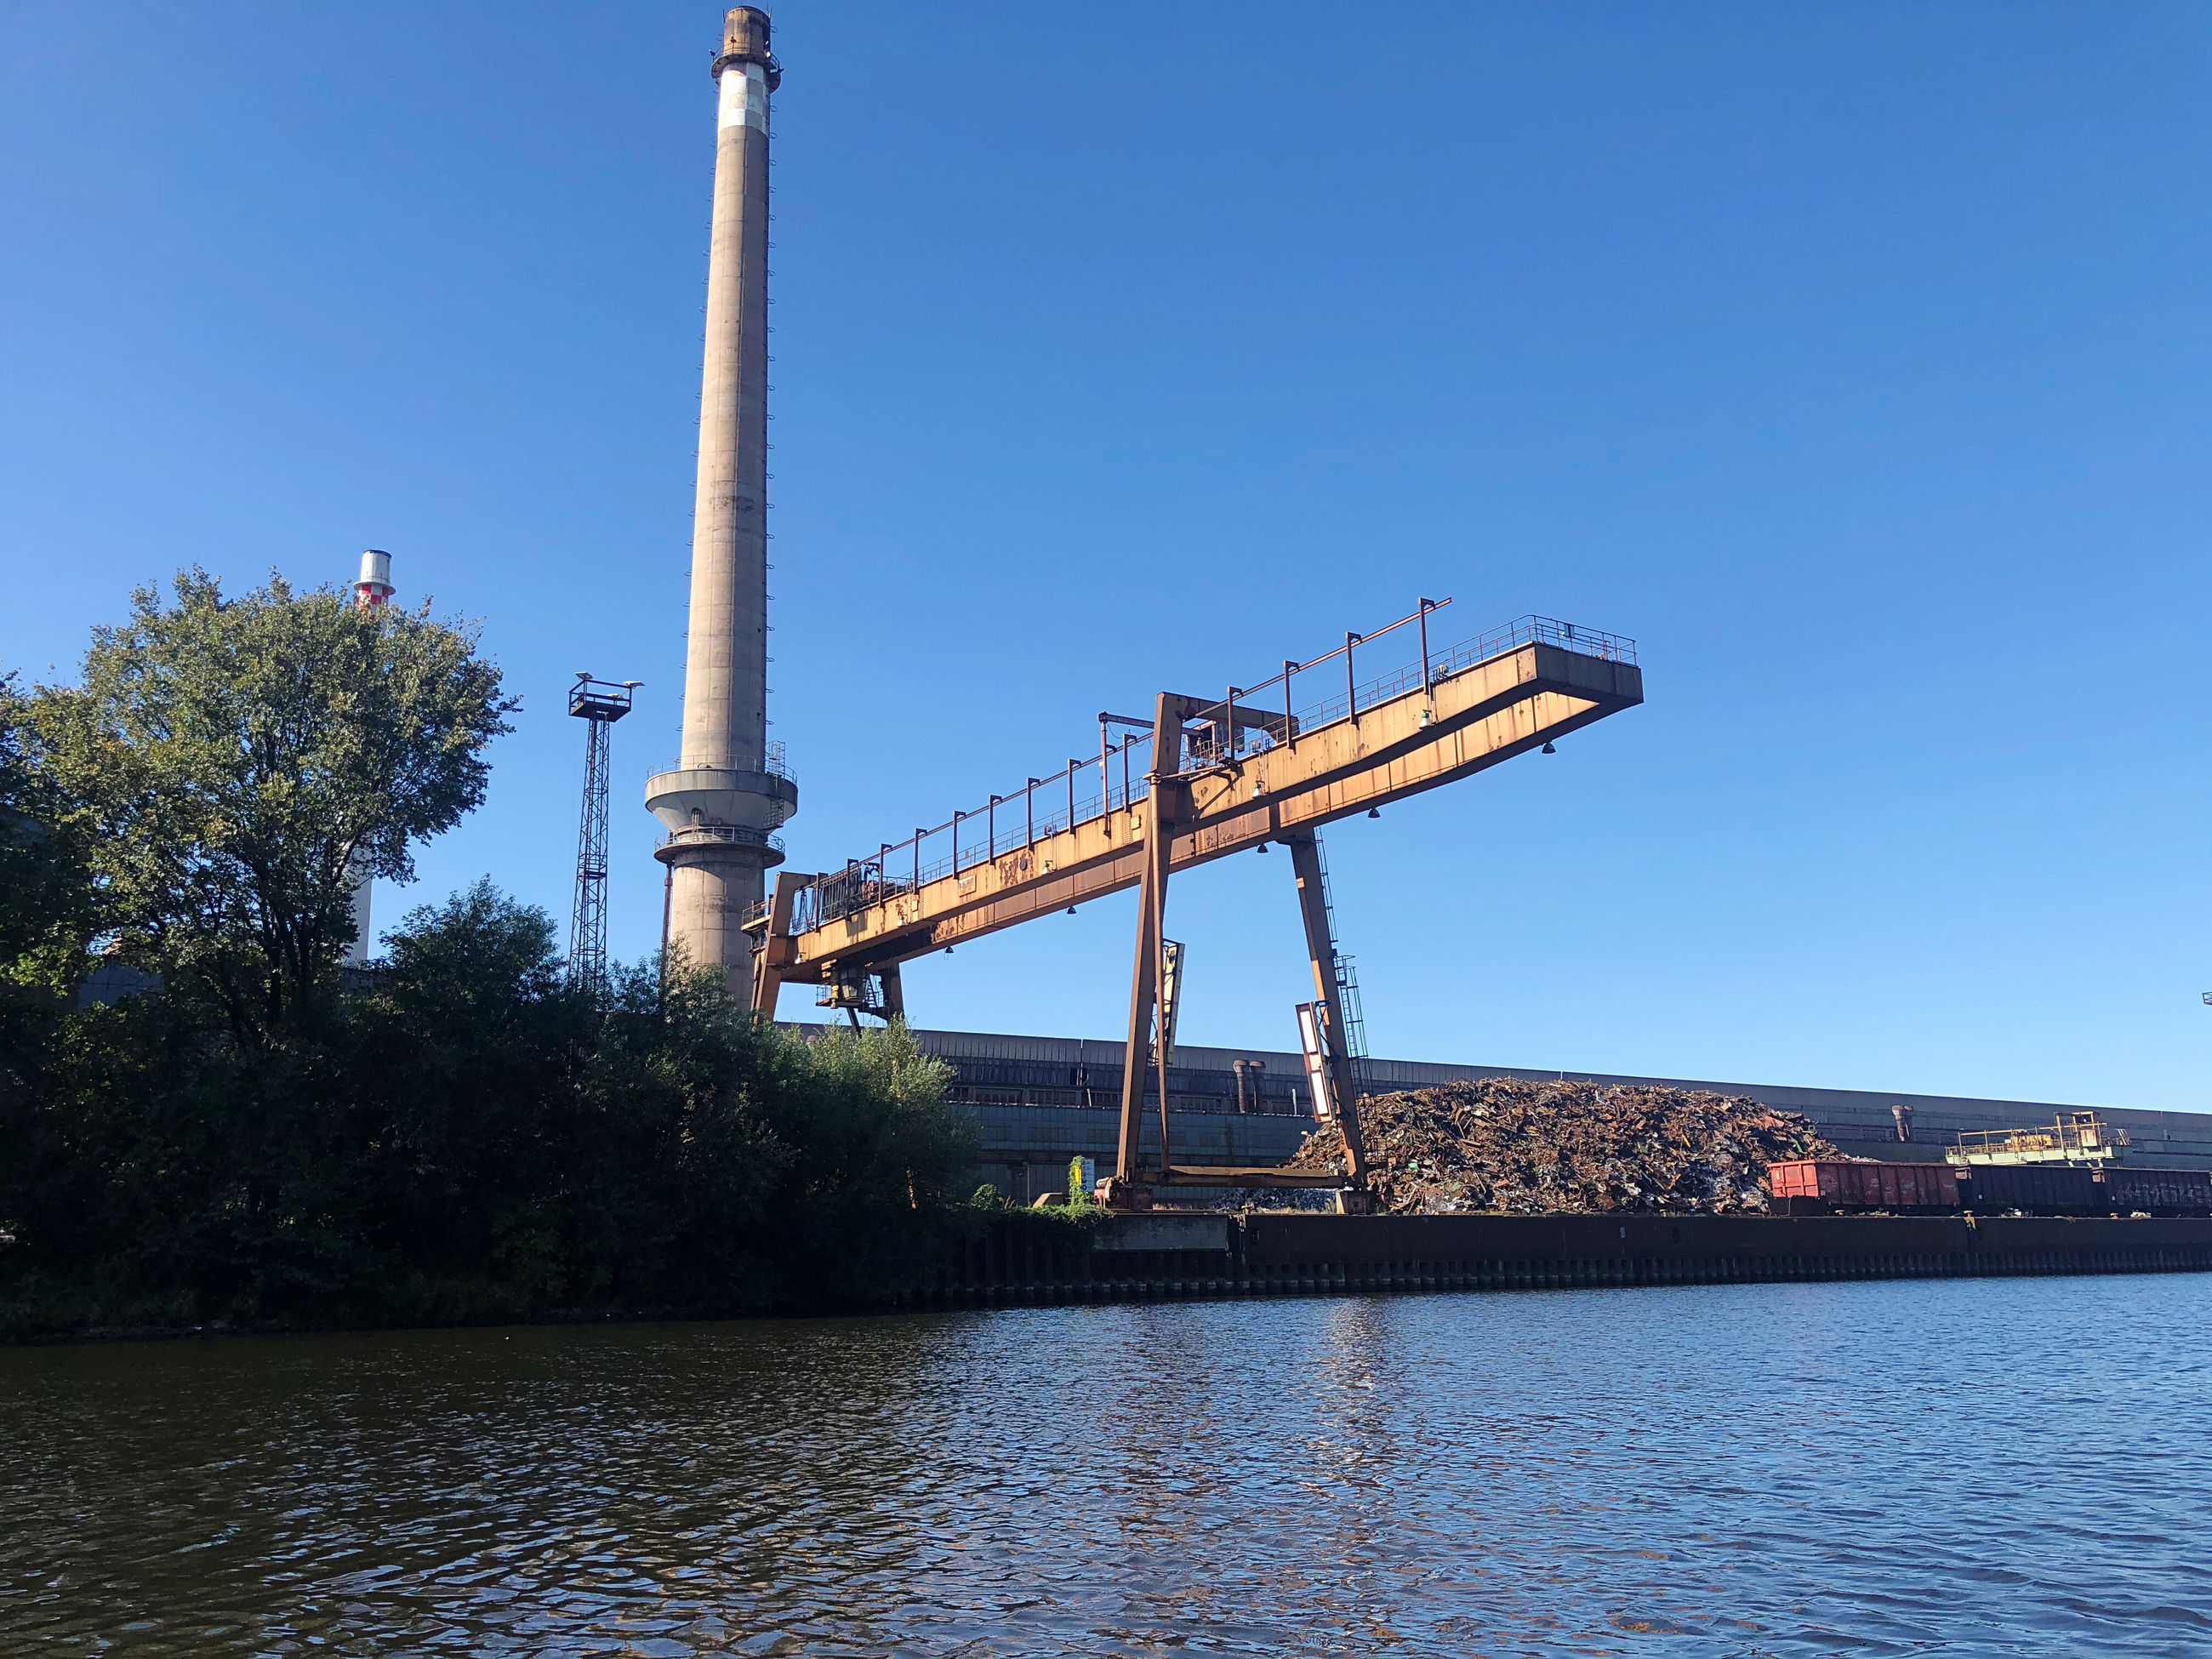 sky, water, clear sky, architecture, built structure, industry, nature, waterfront, no people, blue, building exterior, day, copy space, outdoors, river, plant, tree, factory, low angle view, industrial equipment